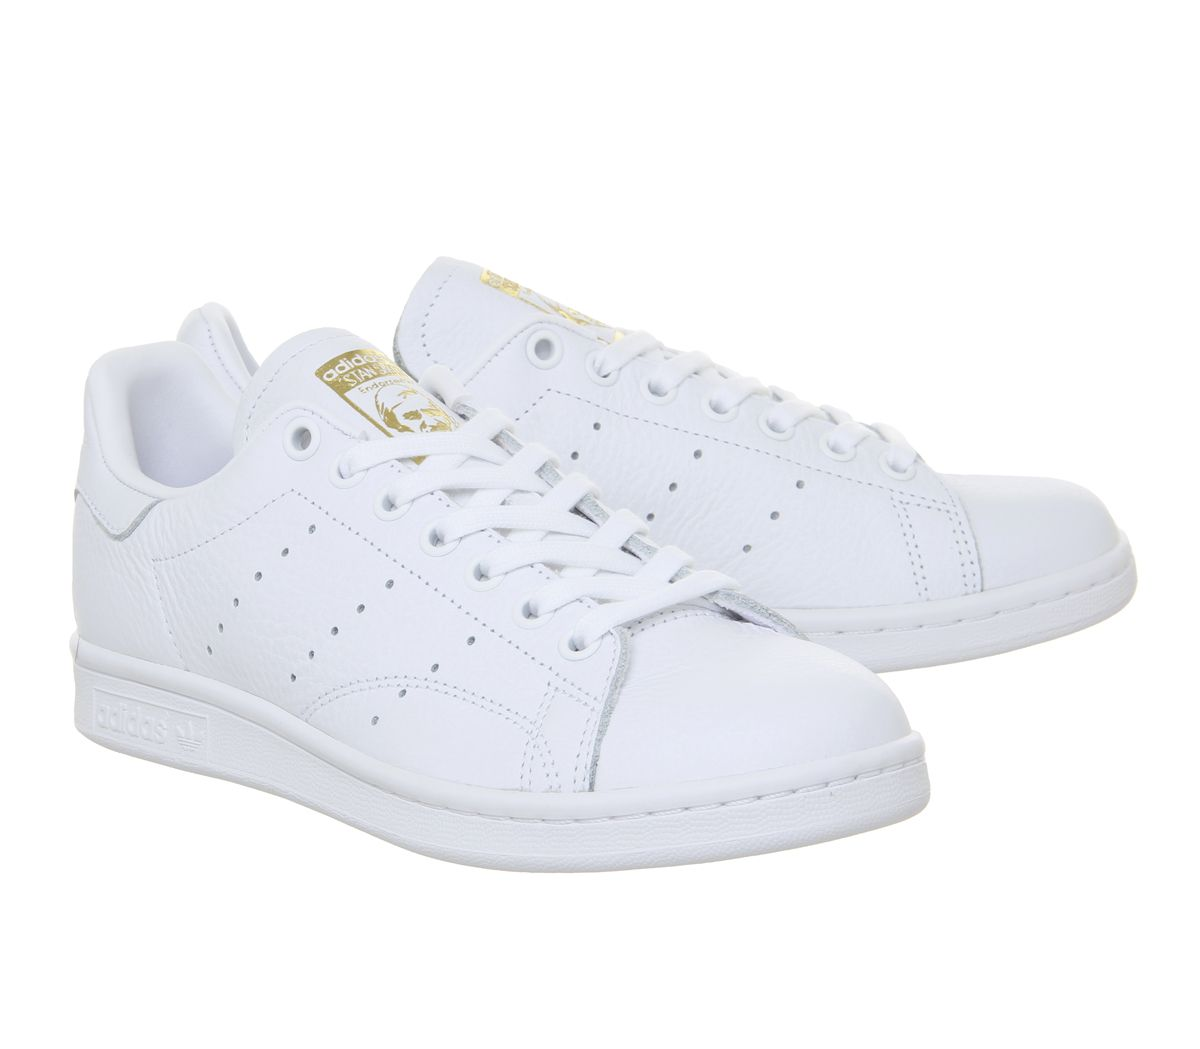 adidas stan smith bianche oro